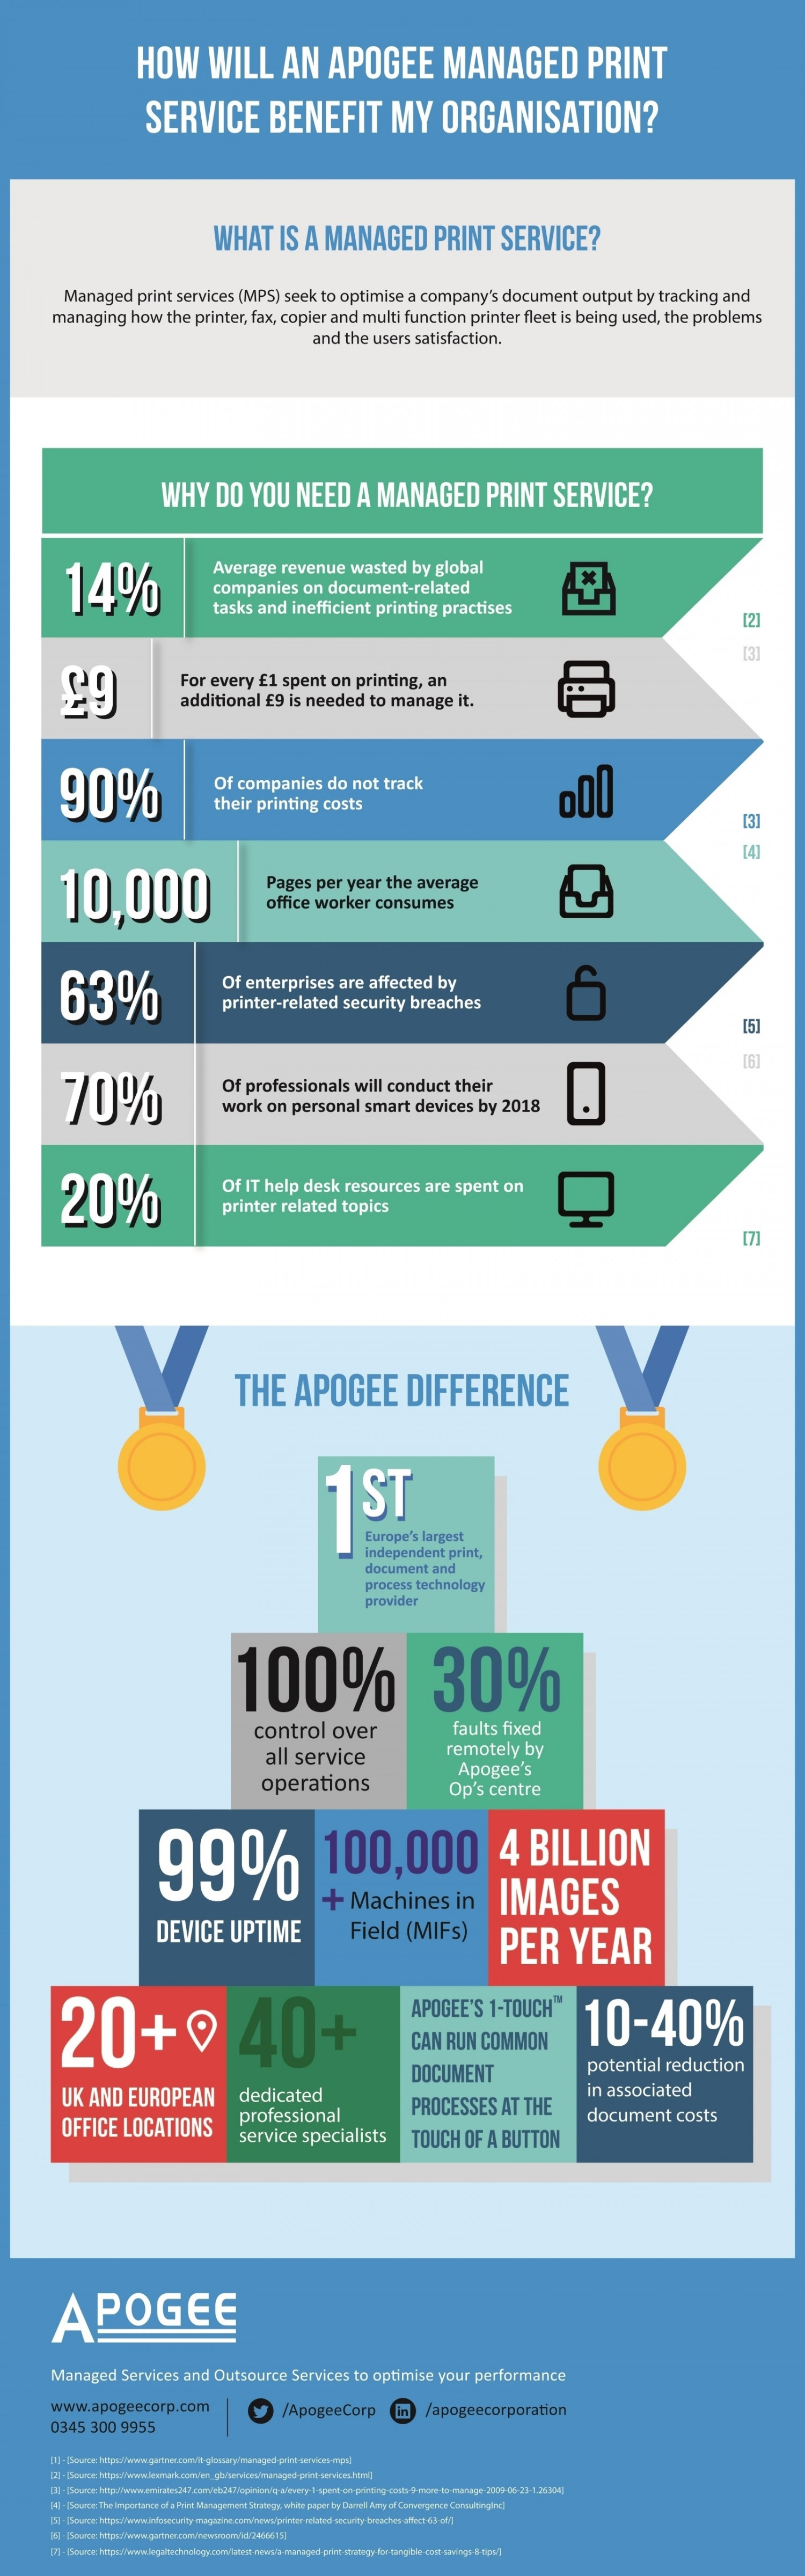 How will a Managed Print Service benefit my organisation? Infographic